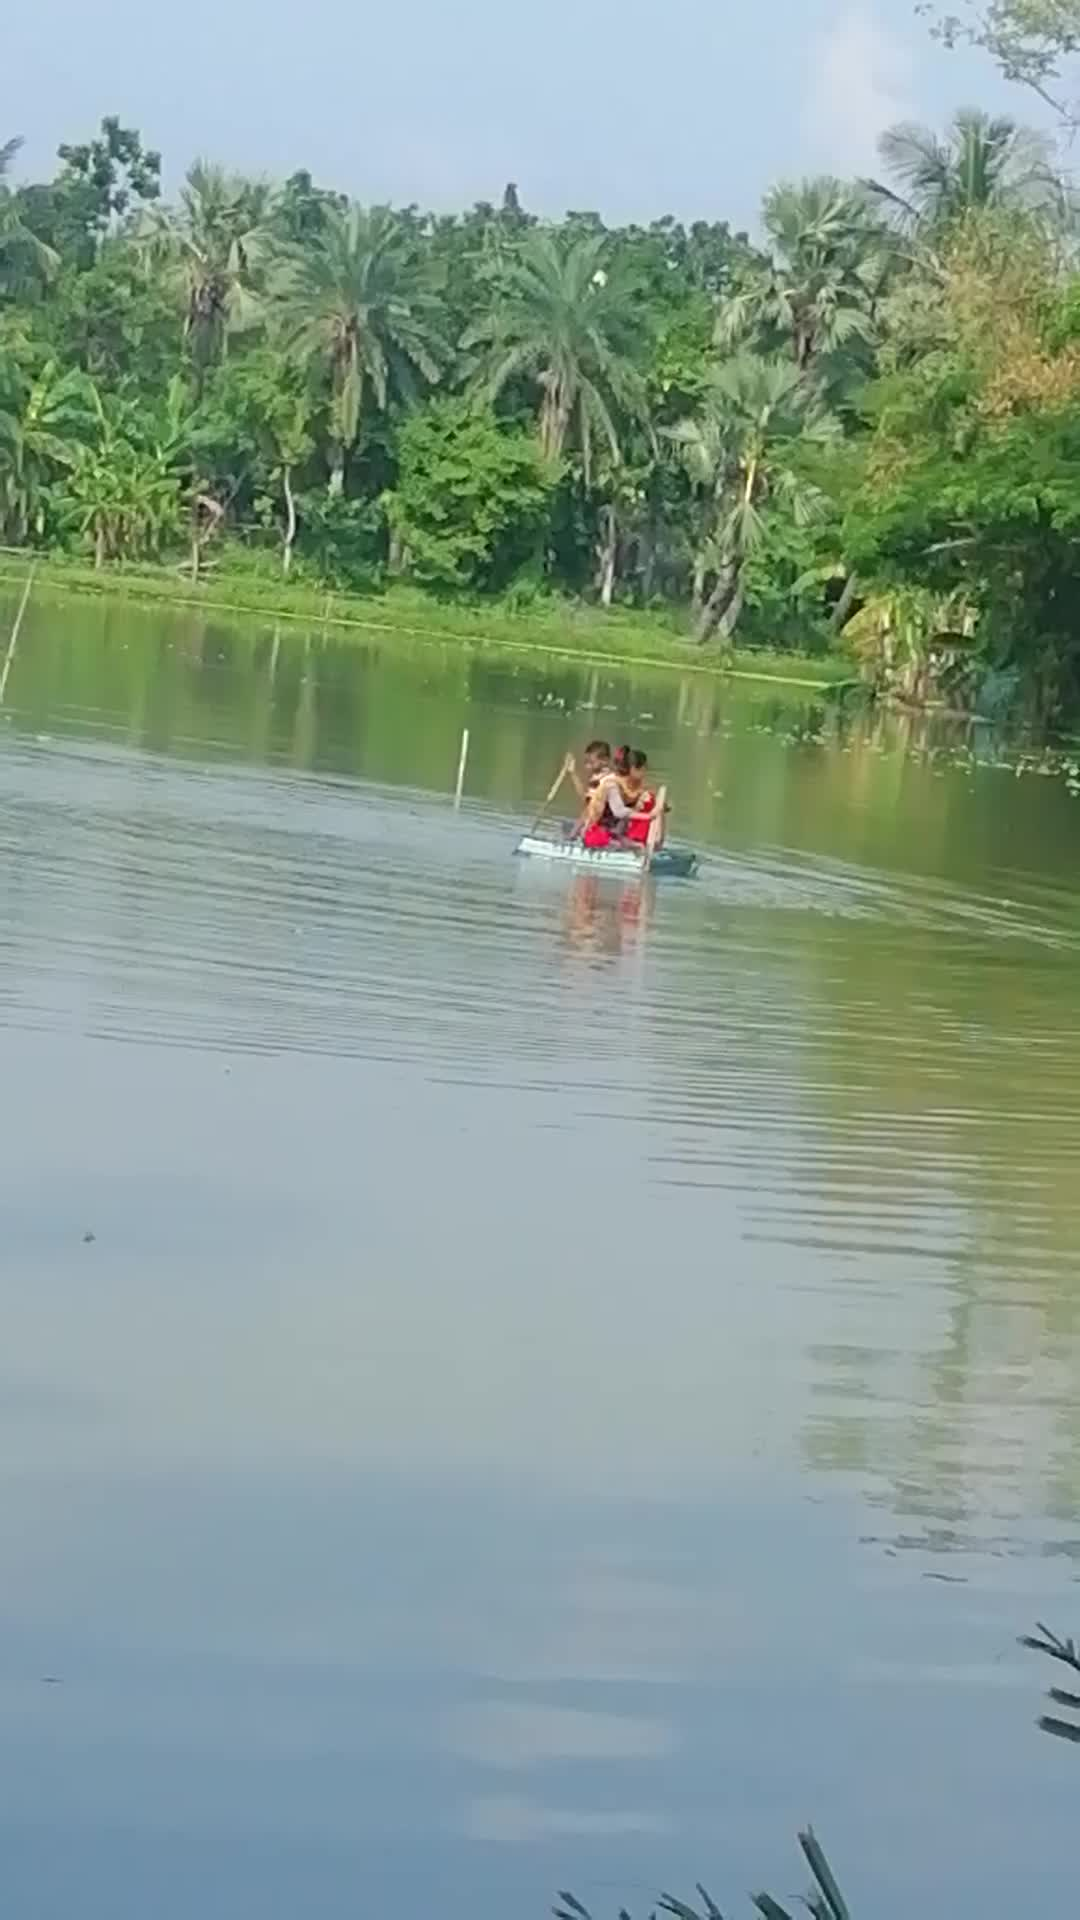 It is very nice to see a video of children playing here inside a house in Zeyala village of Satkhira district